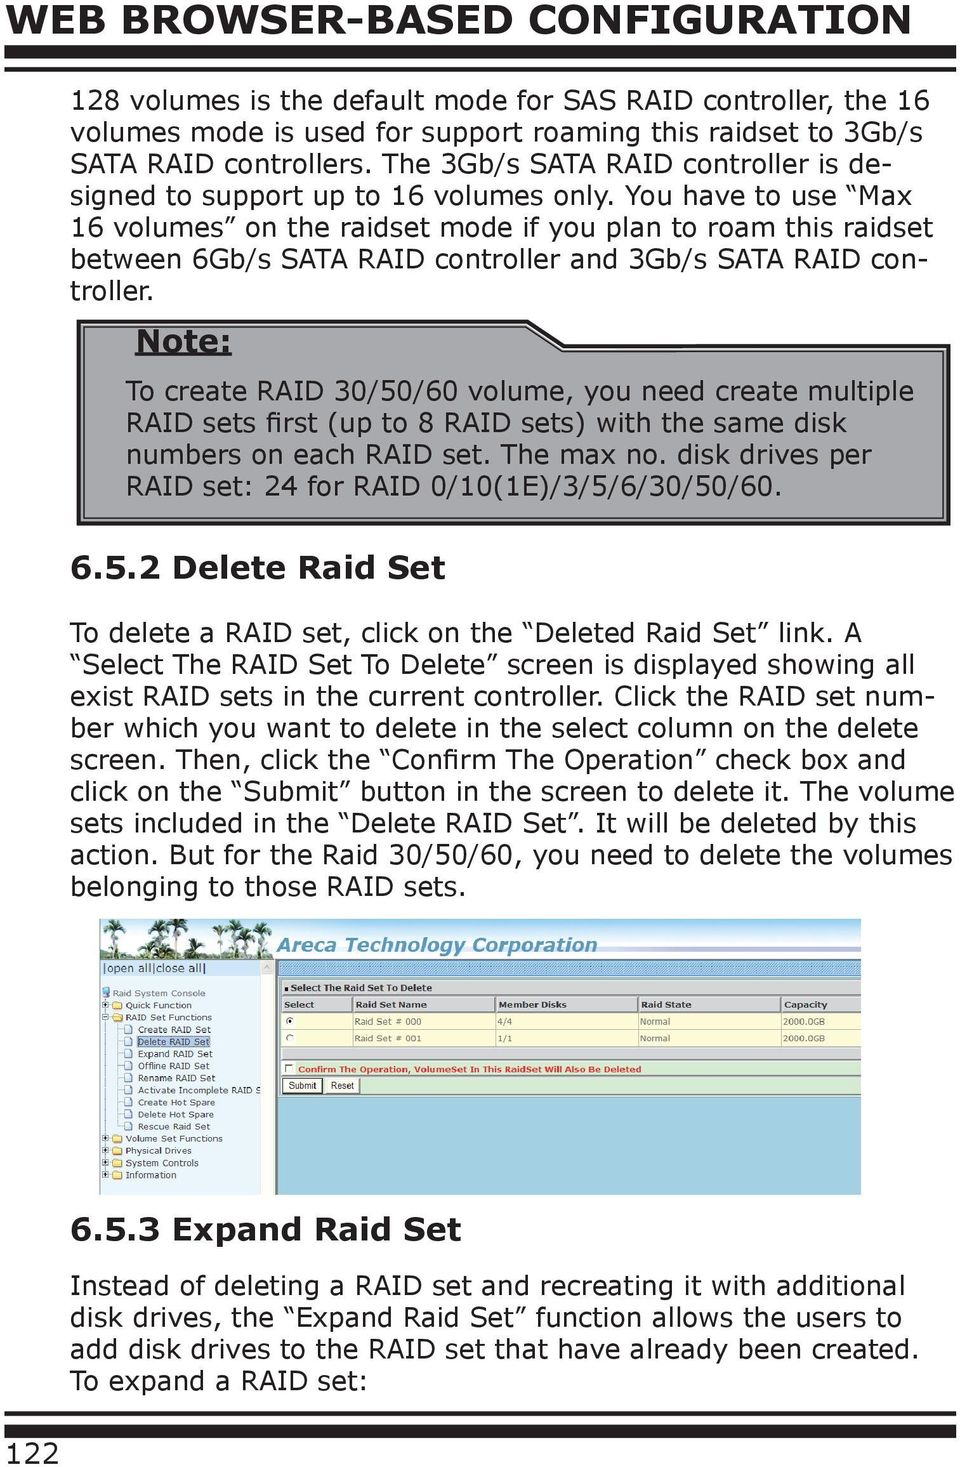 You have to use Max 16 volumes on the raidset mode if you plan to roam this raidset between 6Gb/s SATA RAID controller and 3Gb/s SATA RAID controller.